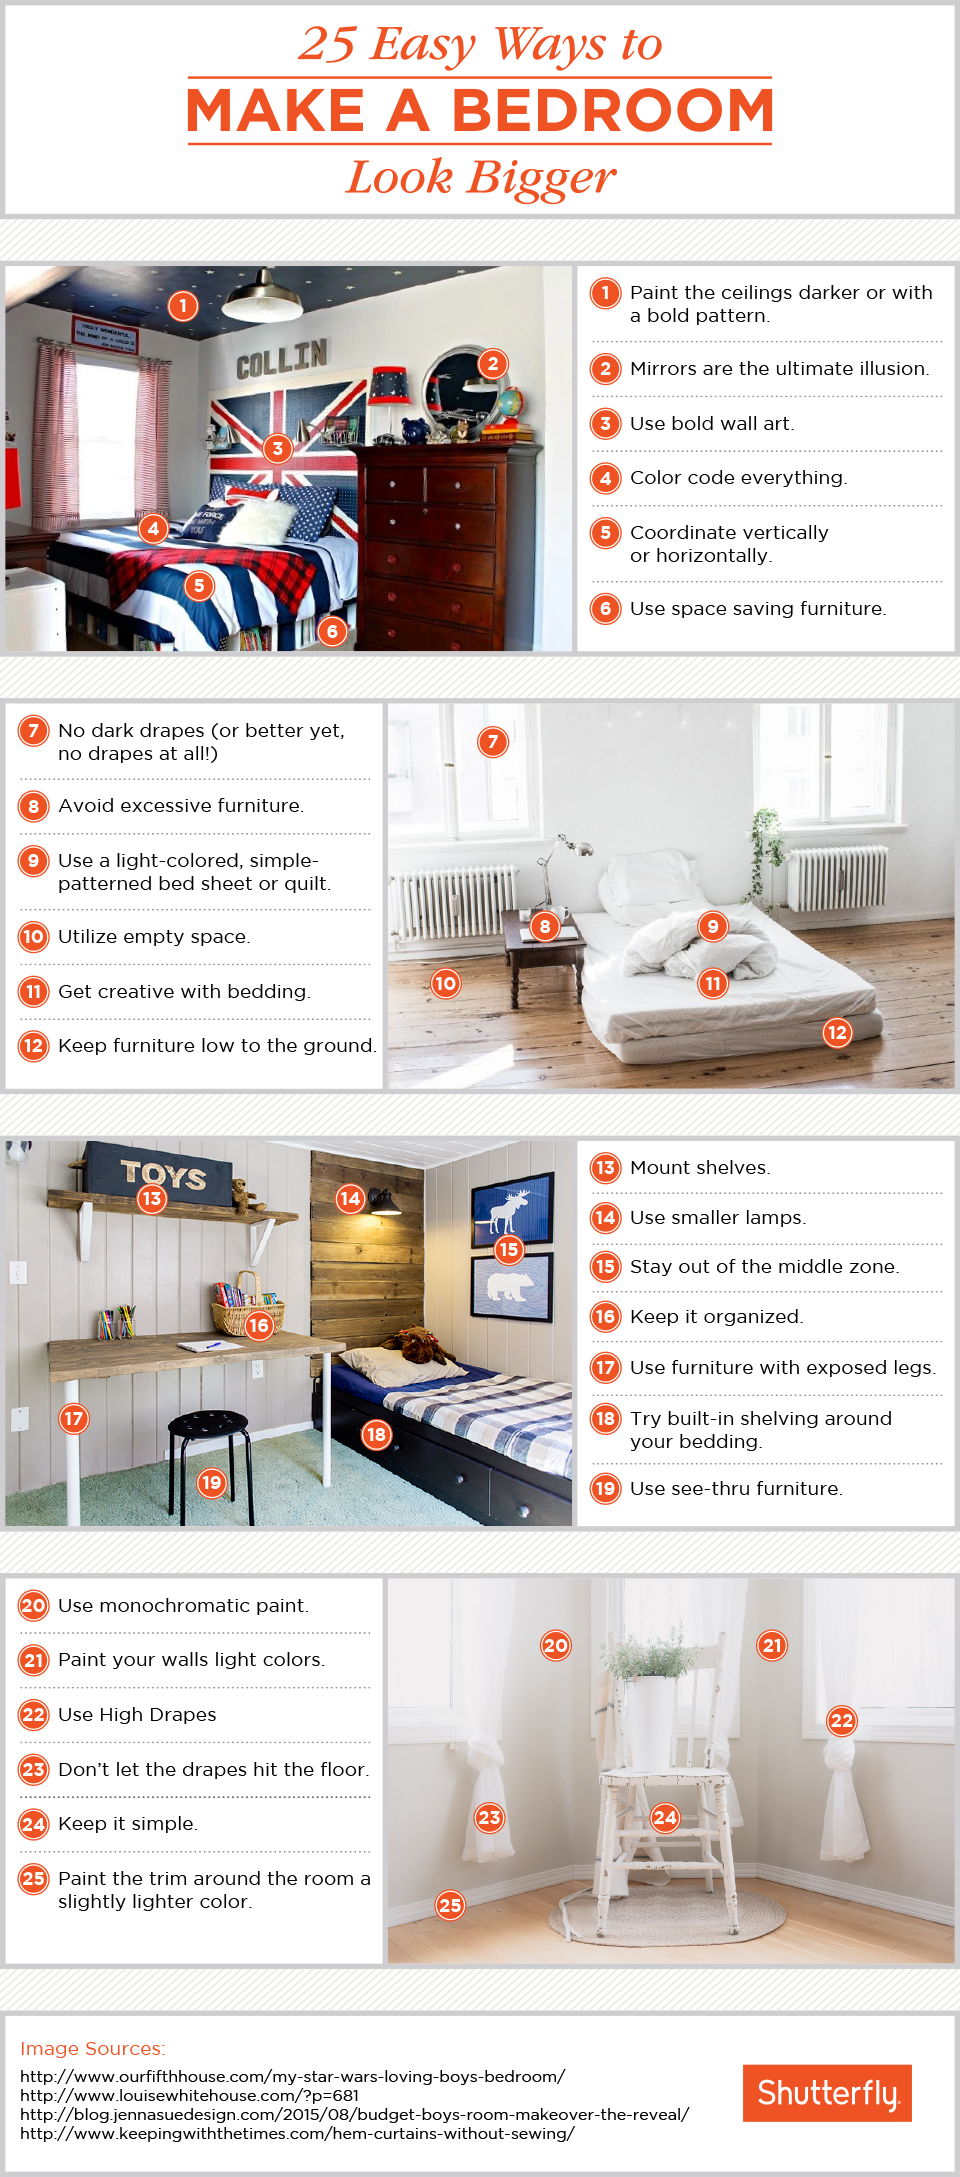 How To Make A Small Bedroom Look Bigger 25 Ways To Make A Small Bedroom Look Bigger